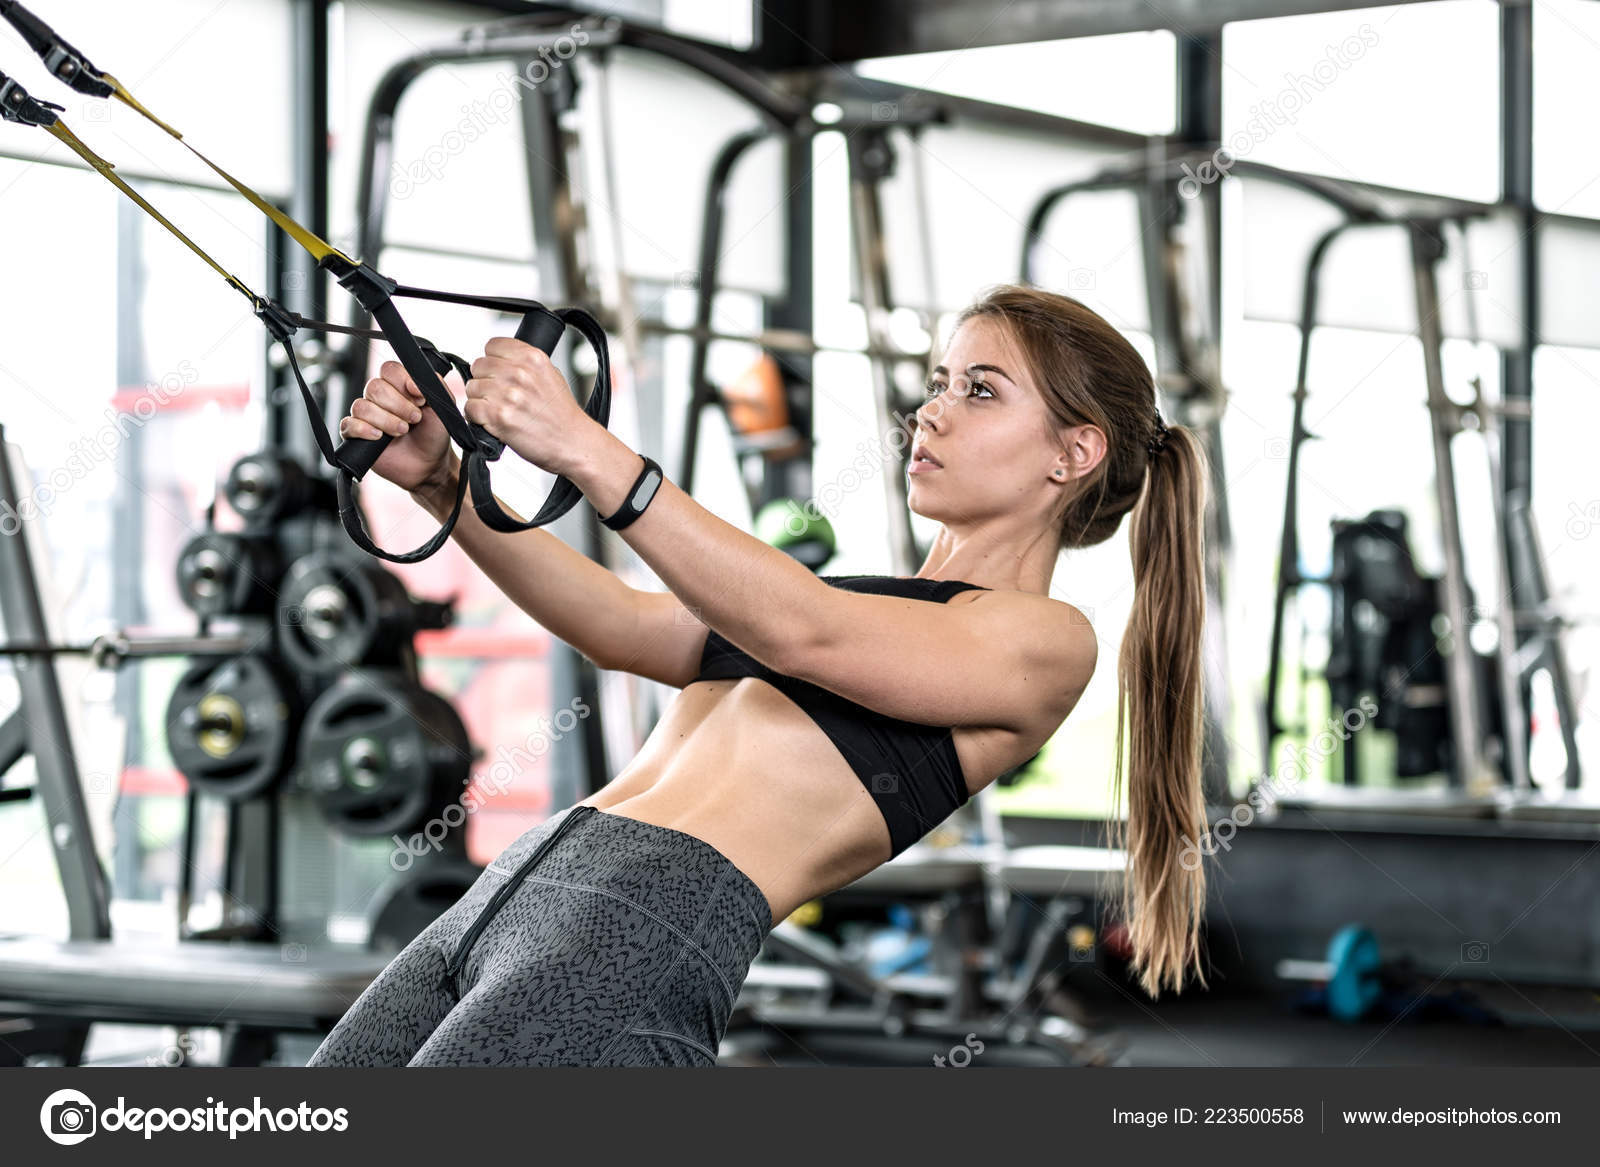 Photos: cute fitness girl | Cute Fitness Girl Doing Hard Athletic Workout  Gym — Stock Photo © wdnet #223500558